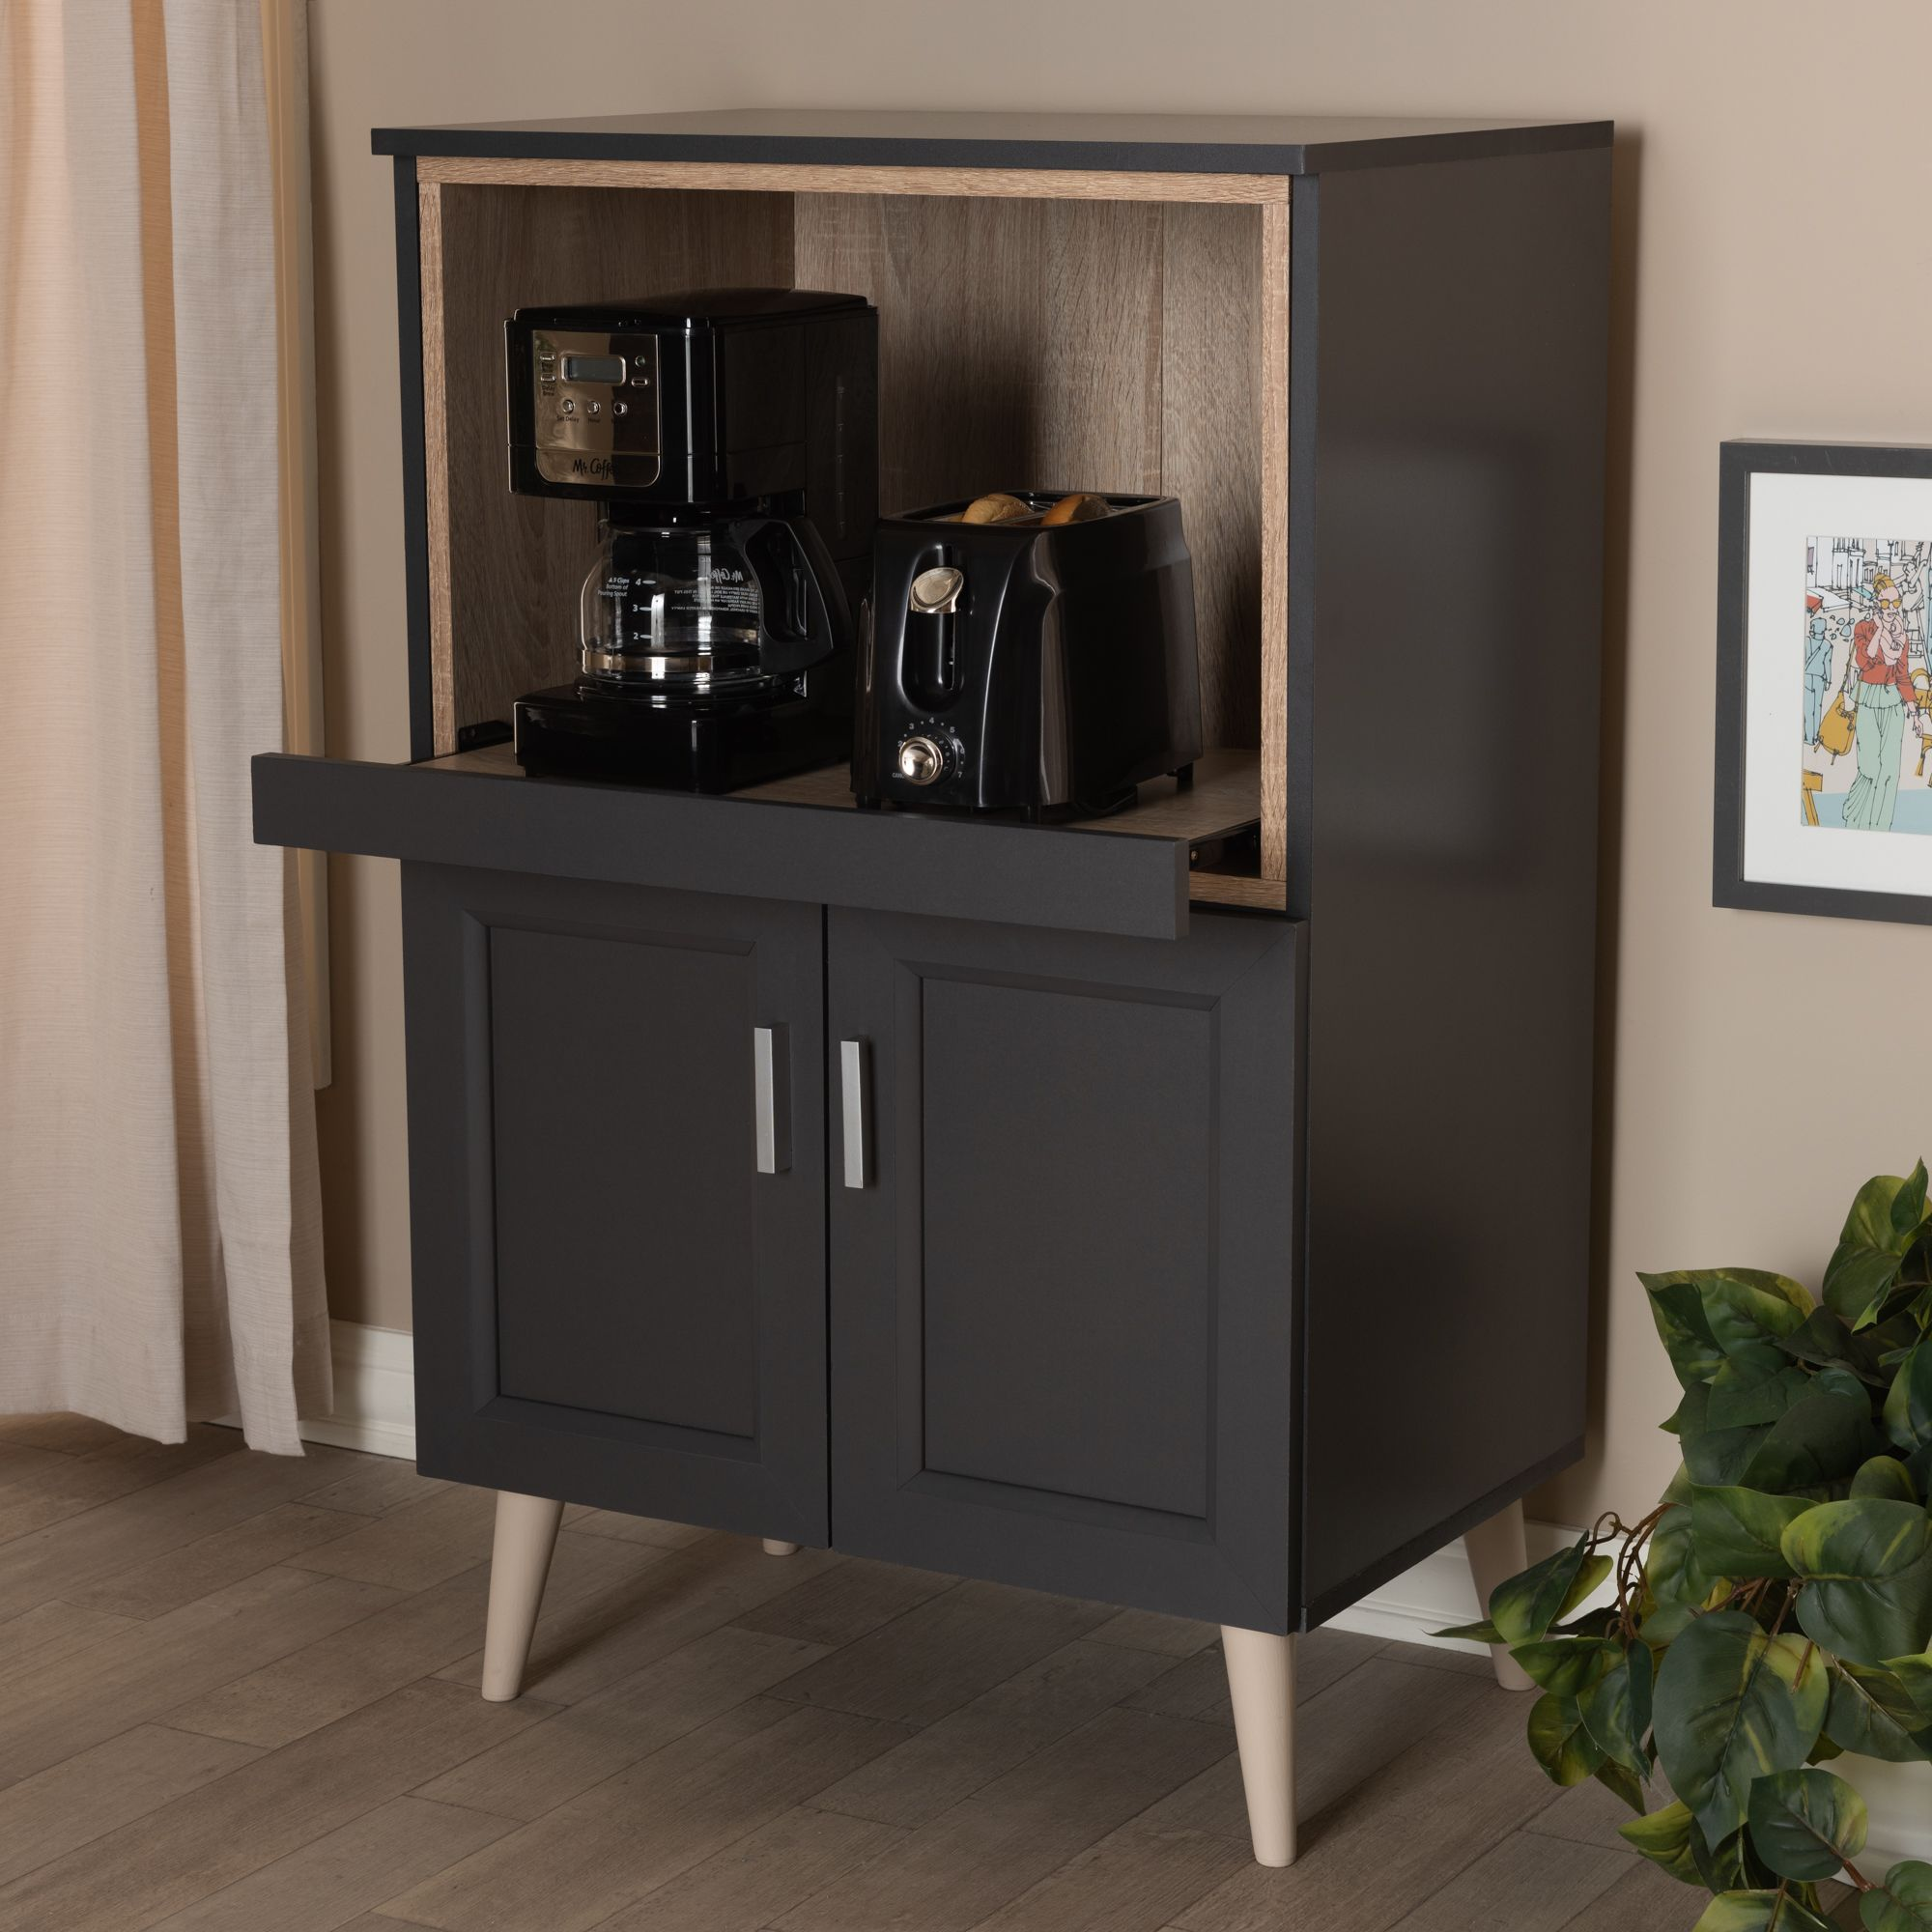 Baxton Studio Tobias Modern And Contemporary Dark Grey And Oak Brown Finished Kitchen Cabinet Walmart Com In 2020 Finish Kitchen Cabinets Brown Kitchen Cabinets Kitchen Cabinet Storage